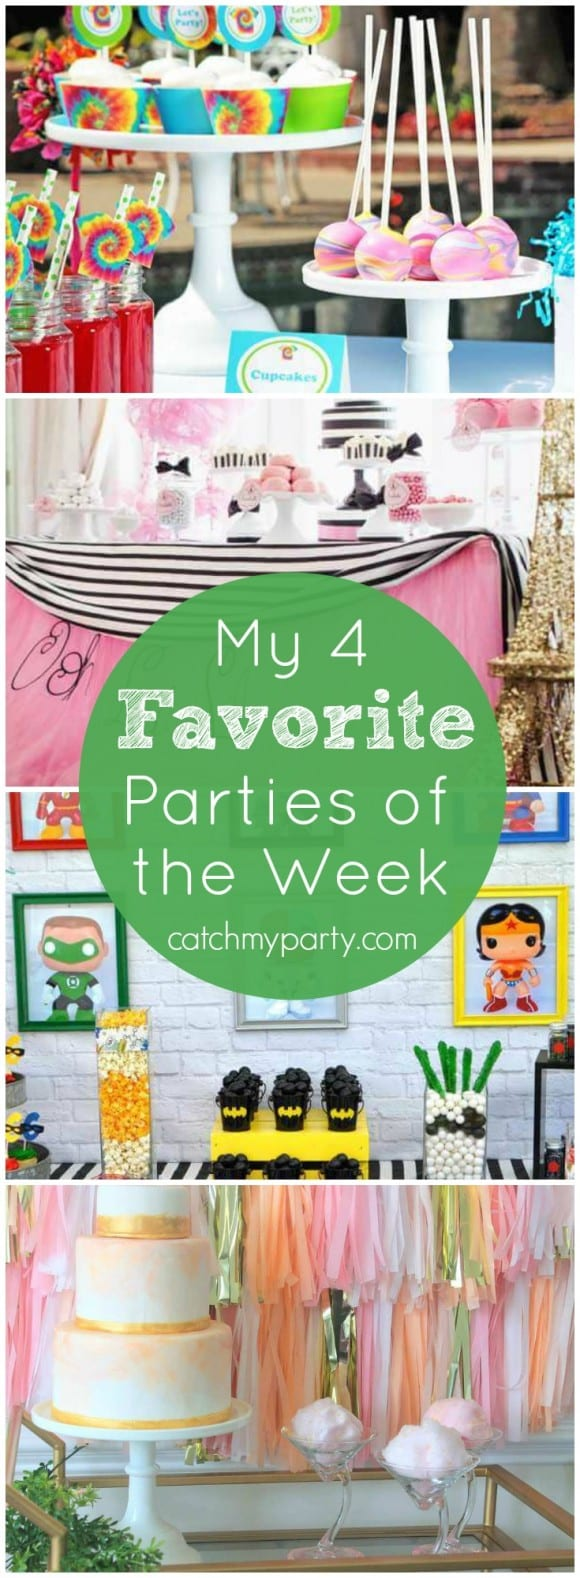 My 4 Favorite Parties of the week include a tie dye birthday party, a pink poodle in Paris party, a Justice League superhero party, and a modern and bright bridal shower!| CatchMyParty.com